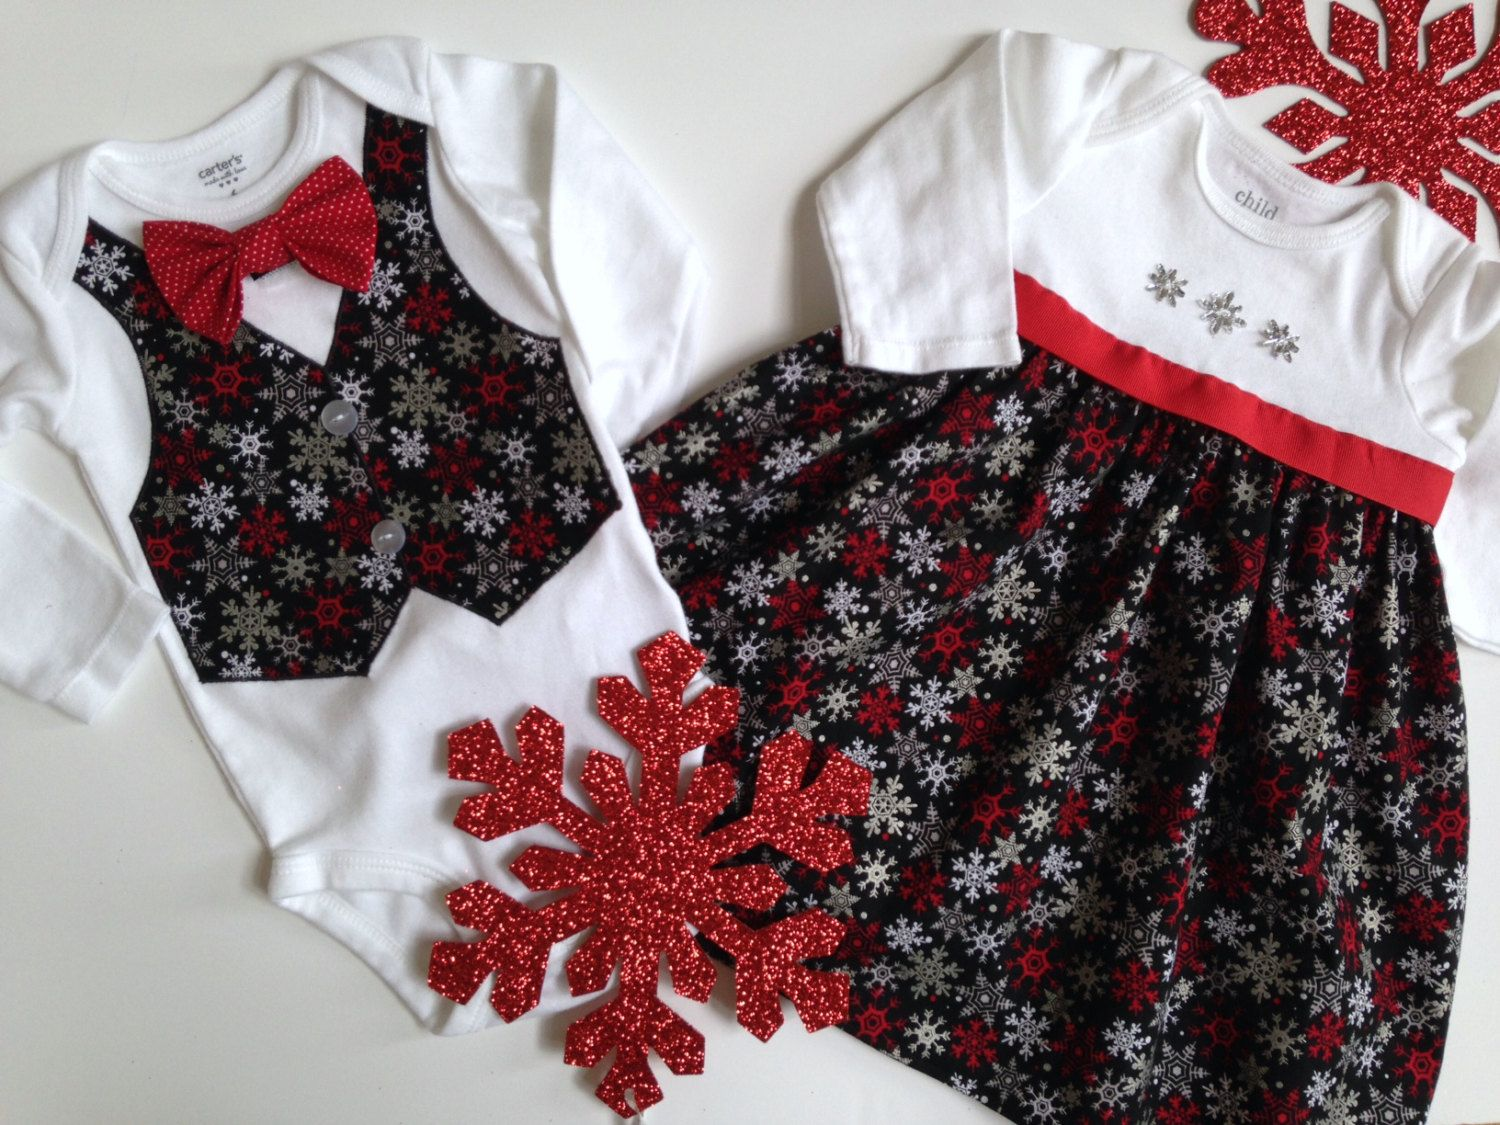 f01237ee6 Christmas Twins Onesie, Sibling Christmas Outfits, Matching Sibling Outfits,  Brother Sister Outfit, Big Sister Little Brother by SweetTootsy on Etsy